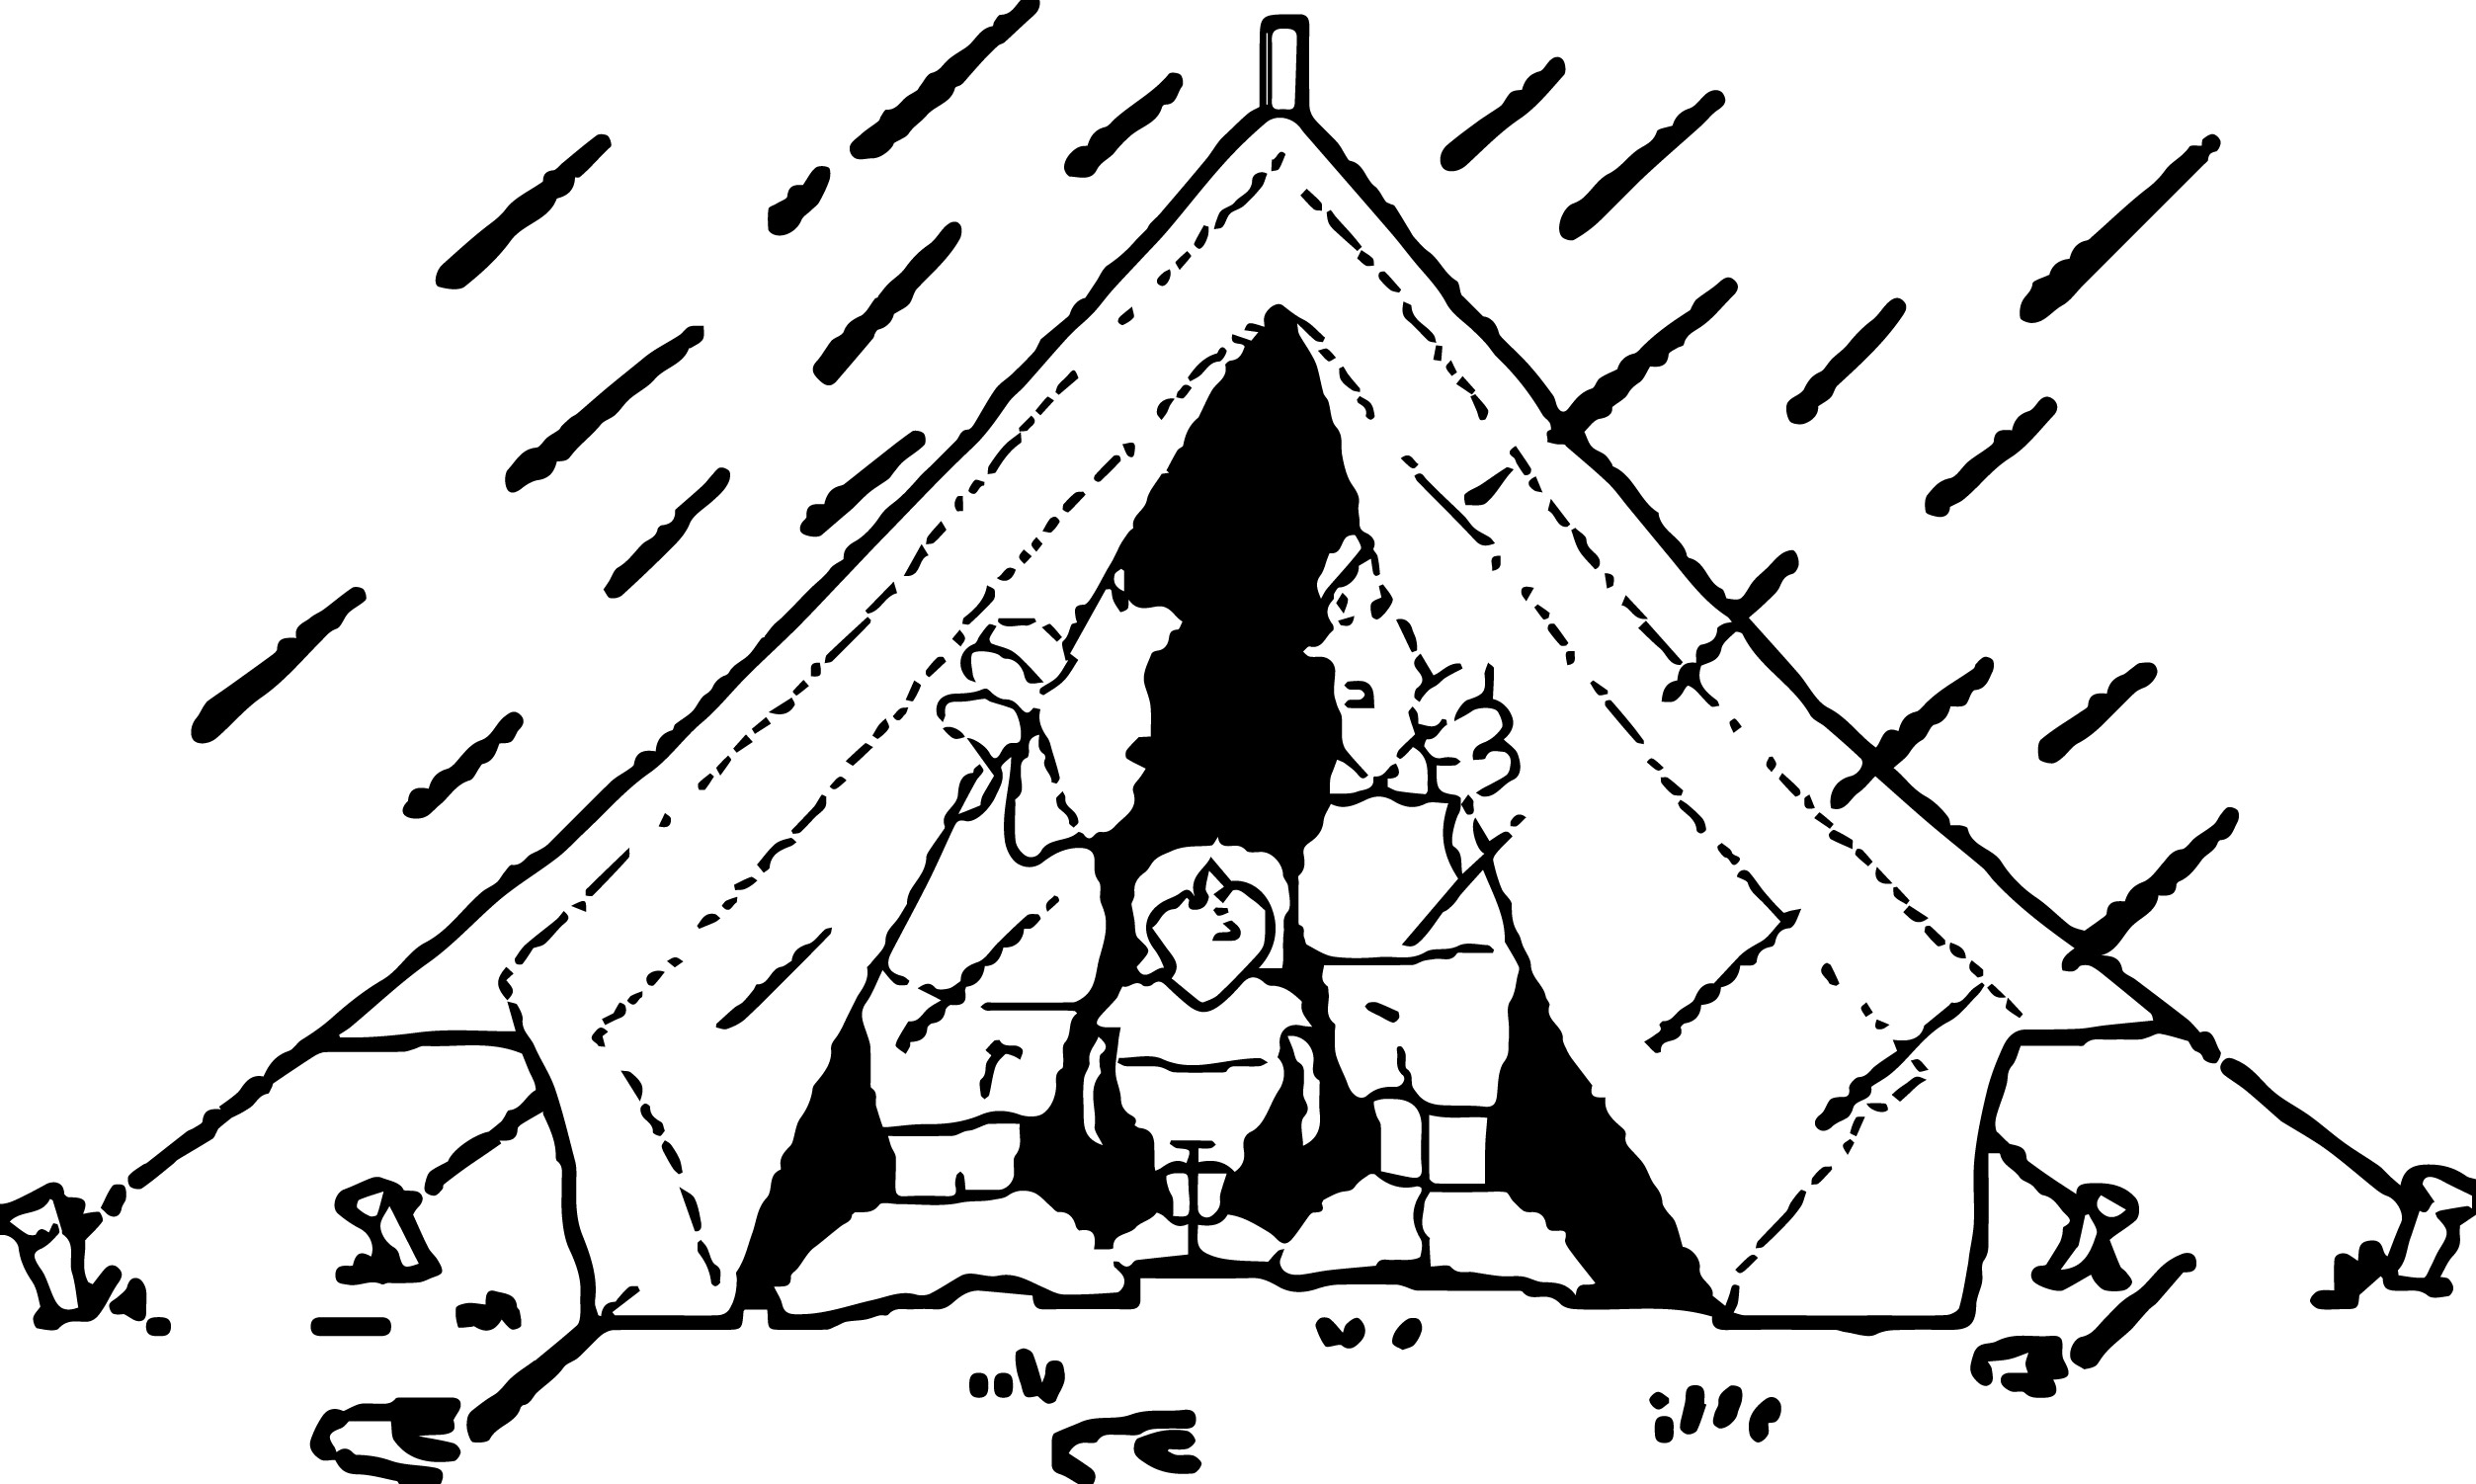 wet_camp coloring page